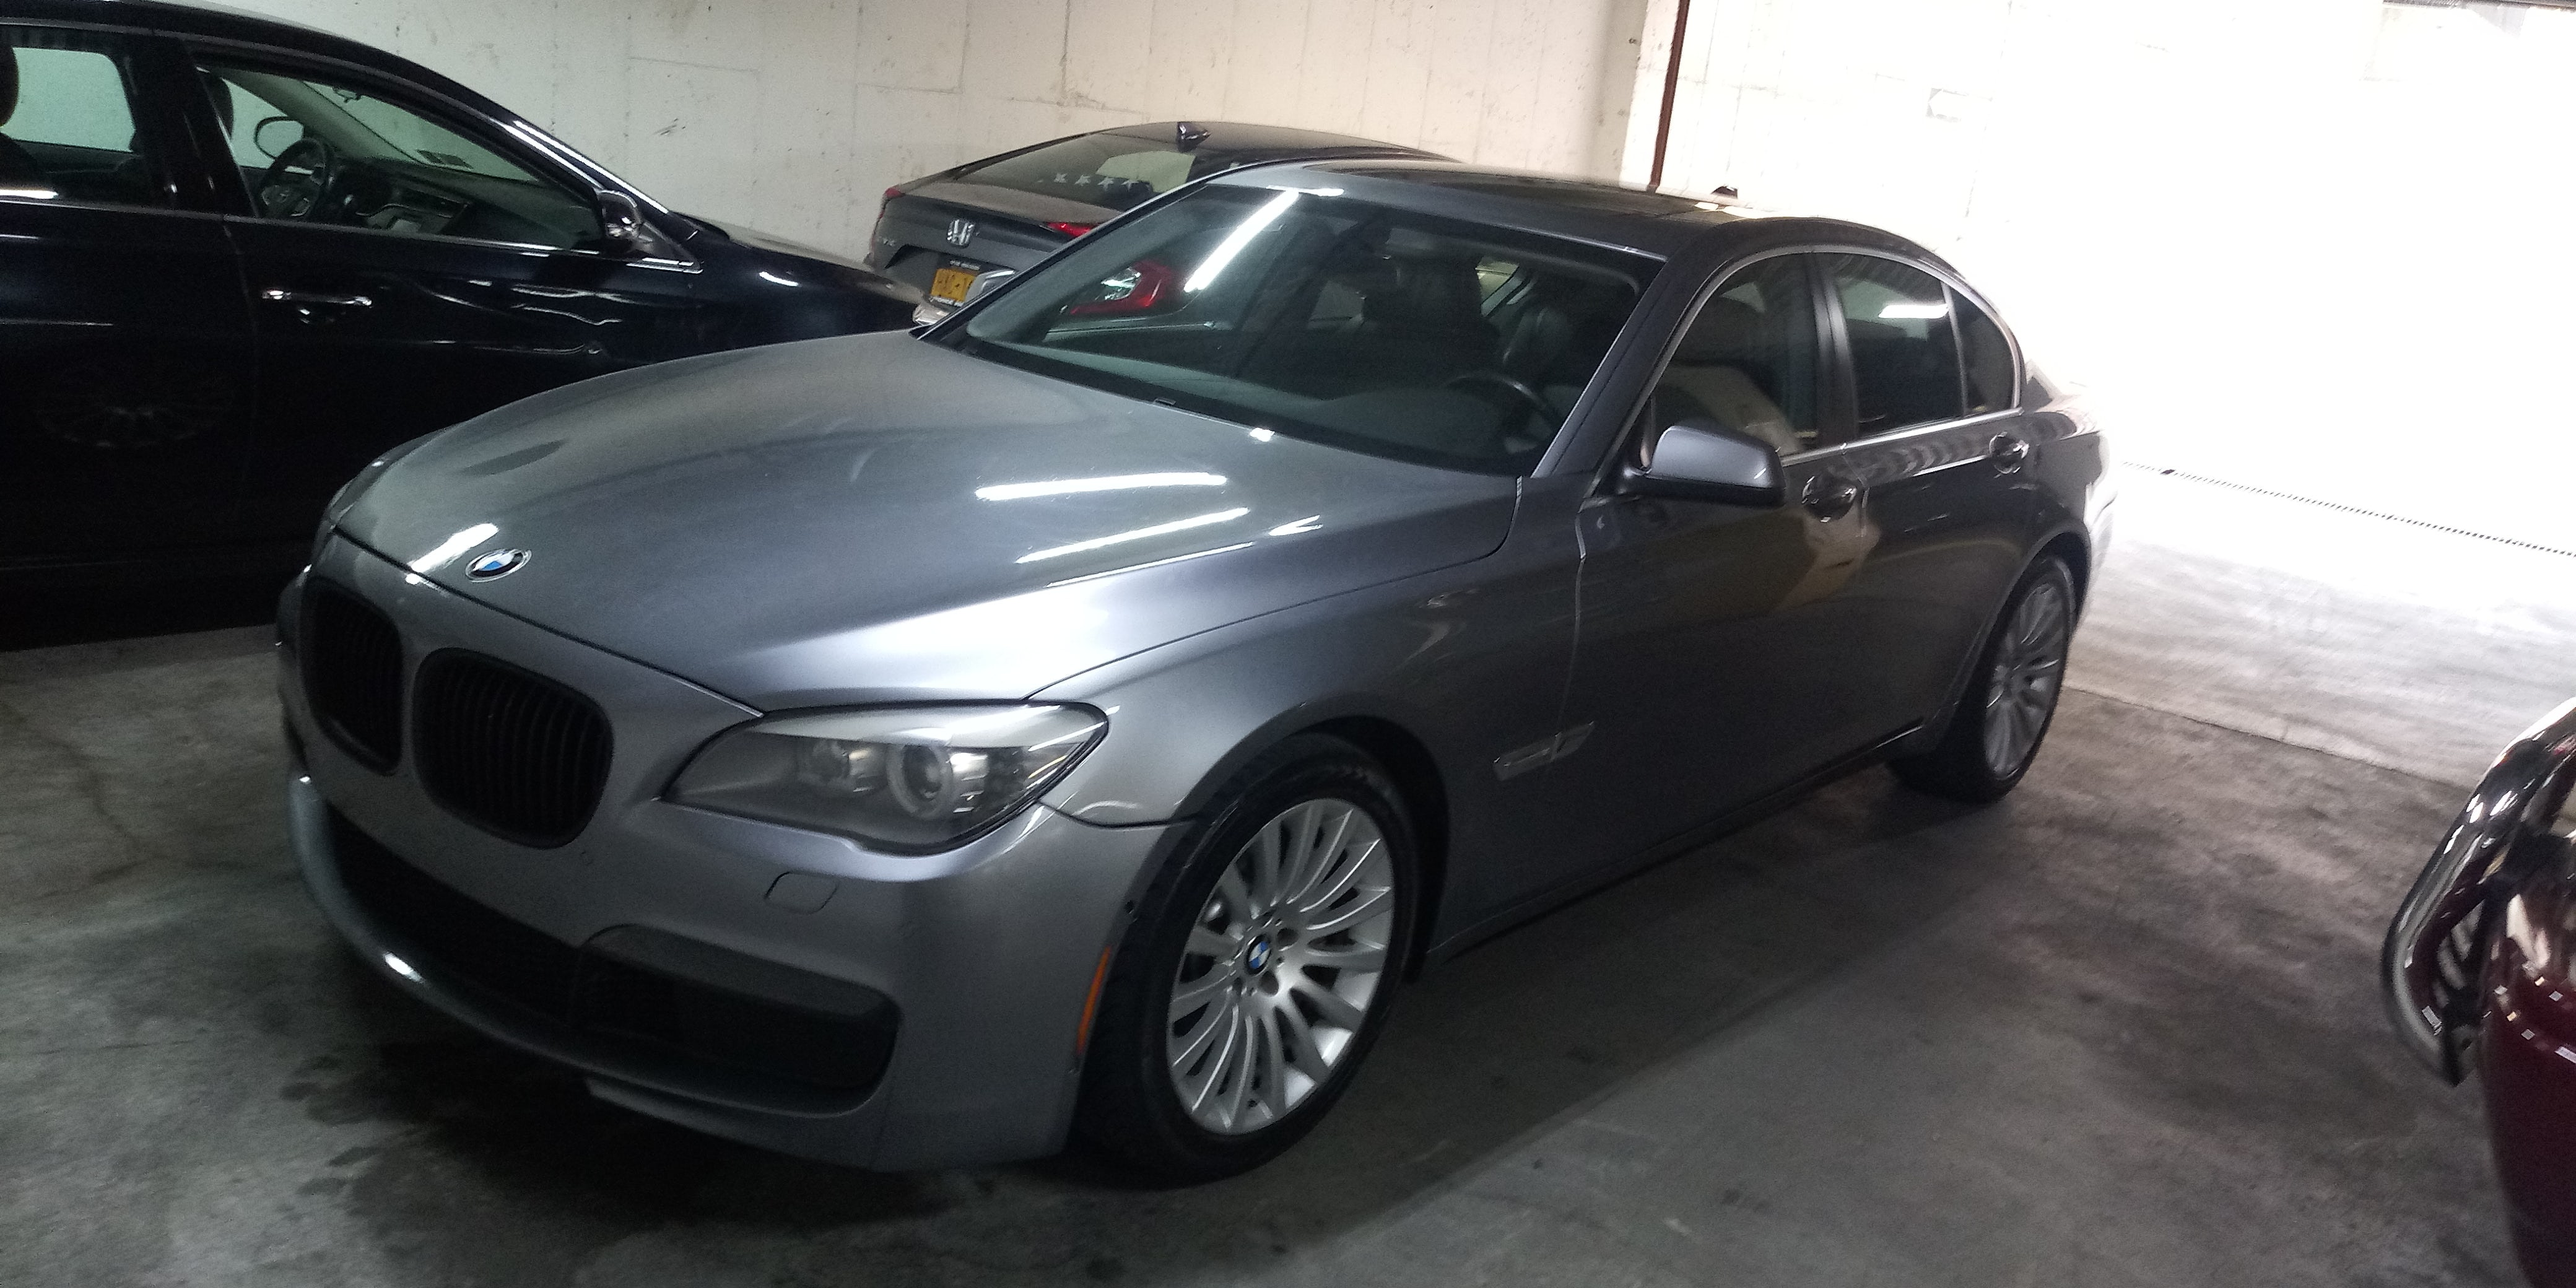 Junk 2010 BMW 750 in Bronx